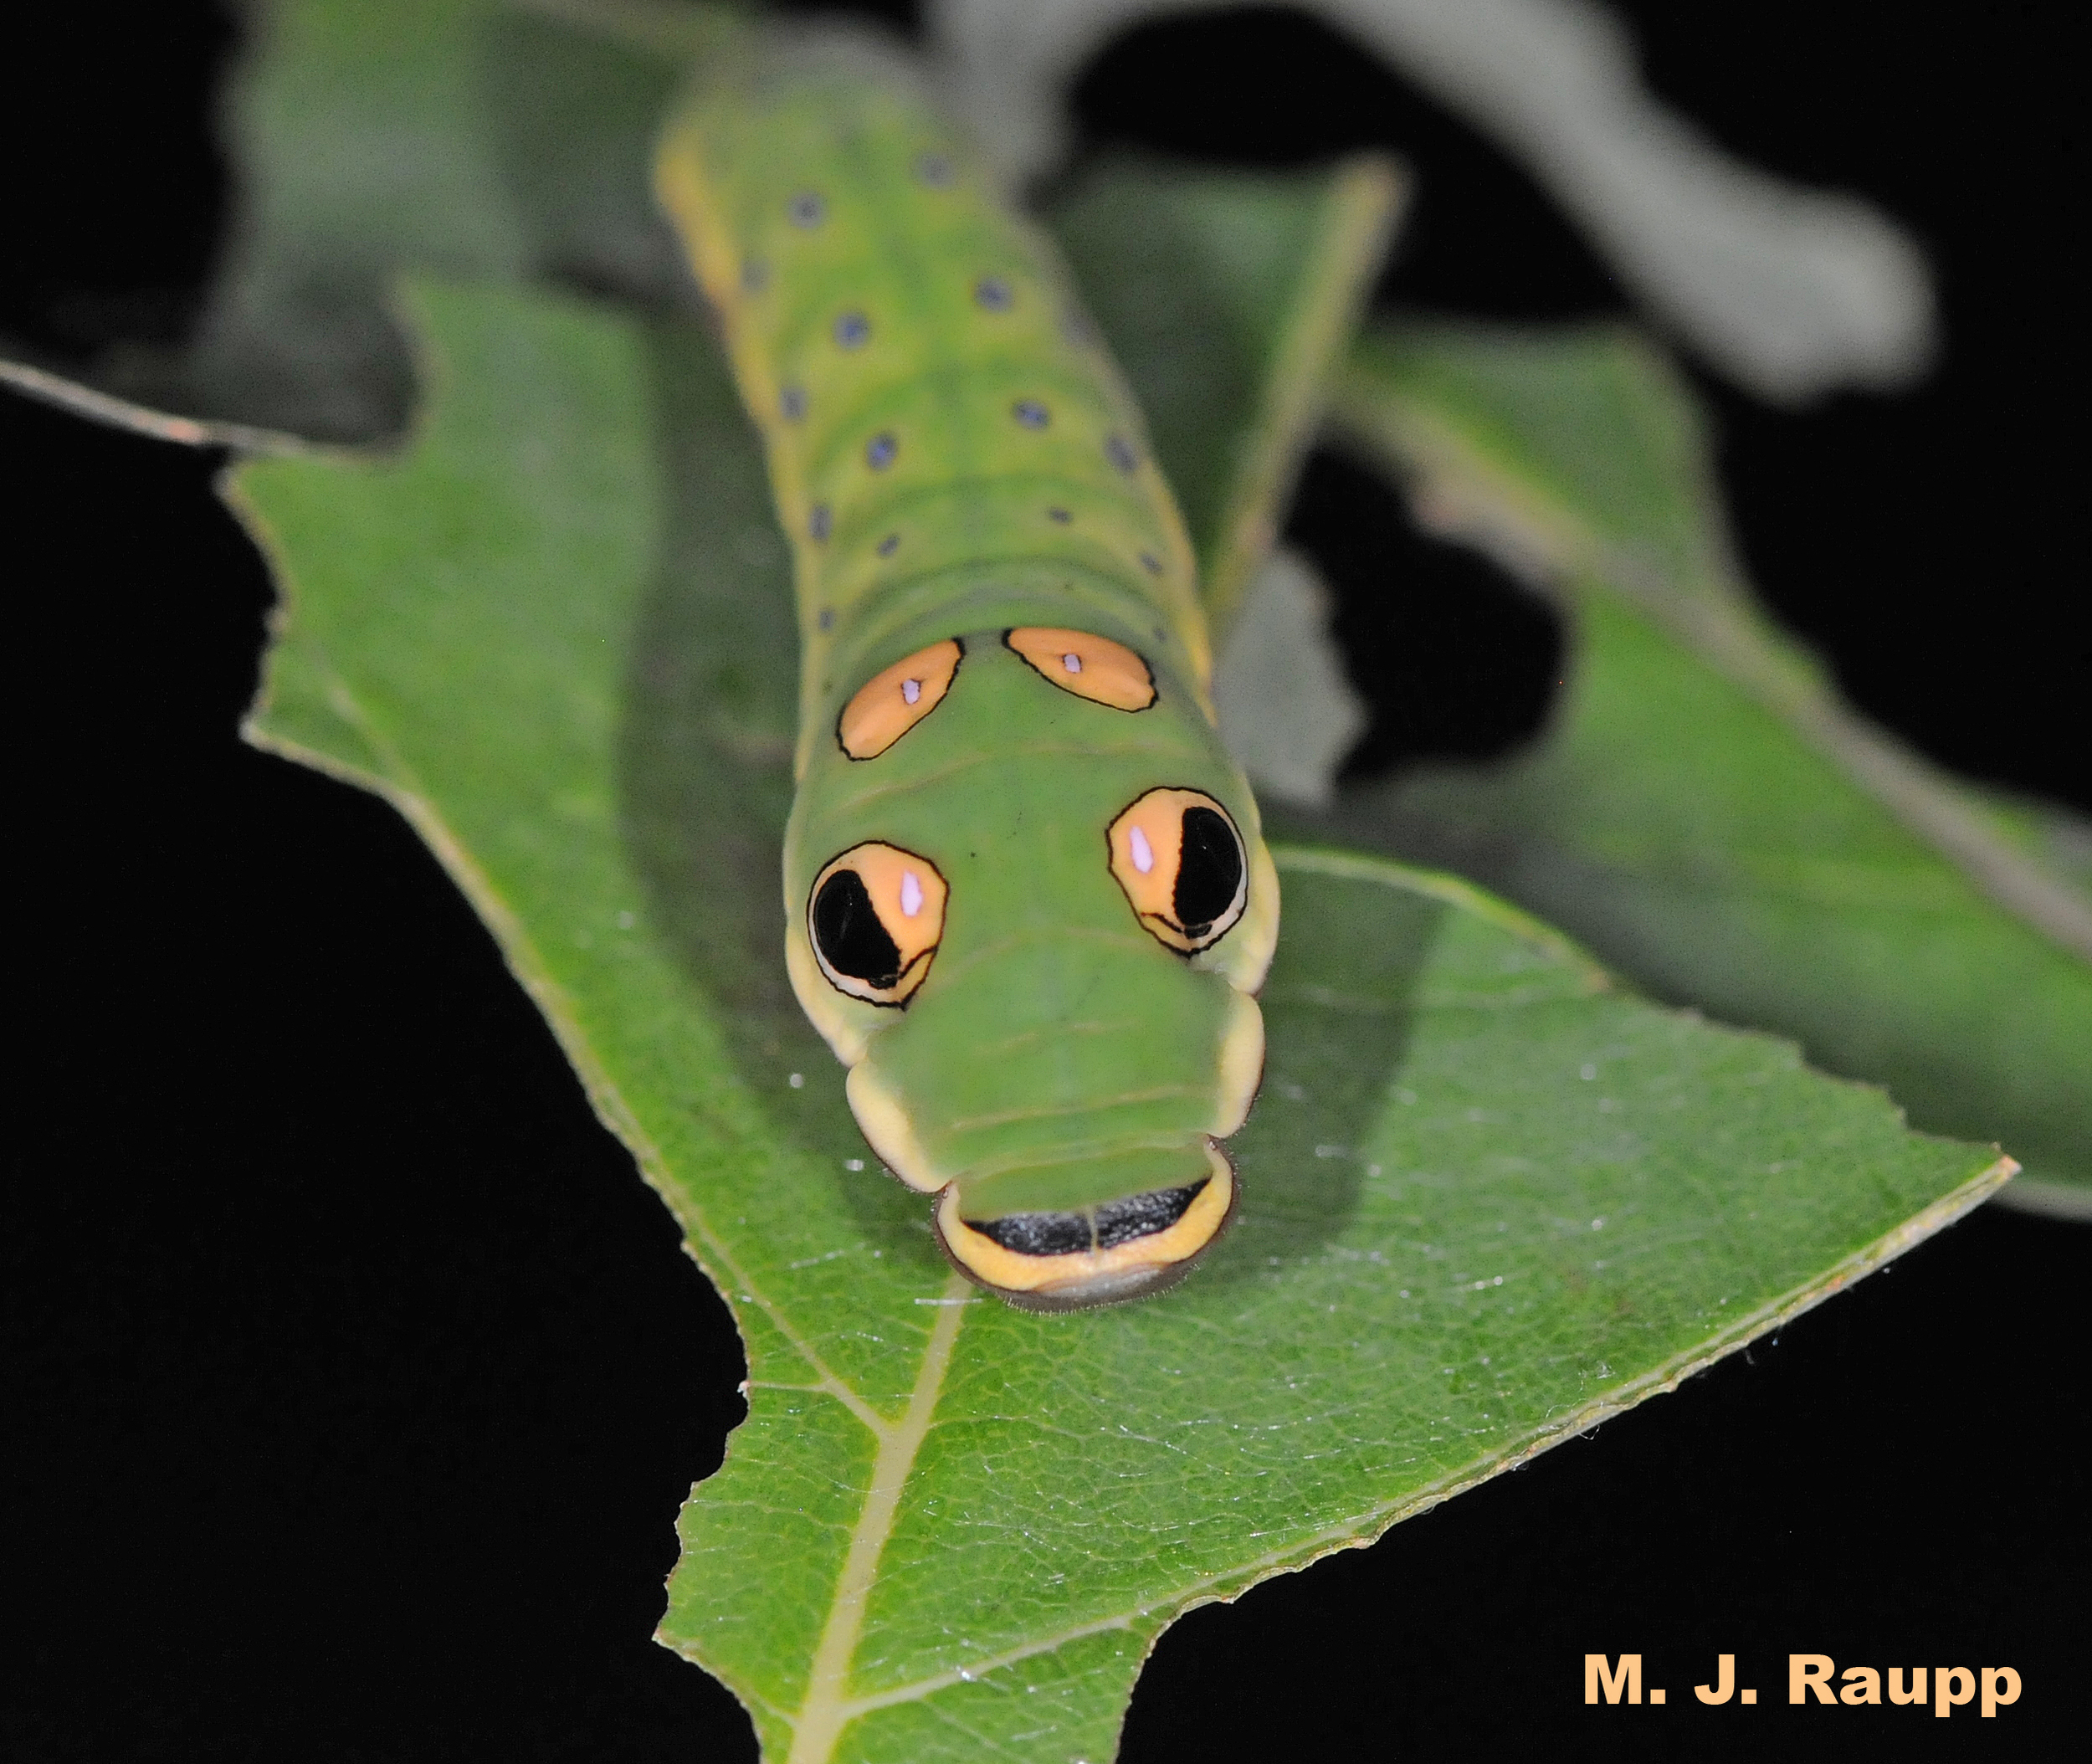 "Large snake-like eyespots on the body might give a hungry bird second thoughts about attacking this caterpillar.                  96     800x600                  Normal     0                     false     false     false         EN-US     JA     X-NONE                                                                                                                                                                                                                                                                                                                                                                                                                                                                                                                                                                                                                                                                                                               /* Style Definitions */ table.MsoNormalTable 	{mso-style-name:""Table Normal""; 	mso-tstyle-rowband-size:0; 	mso-tstyle-colband-size:0; 	mso-style-noshow:yes; 	mso-style-priority:99; 	mso-style-parent:""""; 	mso-padding-alt:0in 5.4pt 0in 5.4pt; 	mso-para-margin:0in; 	mso-para-margin-bottom:.0001pt; 	mso-pagination:widow-orphan; 	font-size:10.0pt; 	font-family:""Times New Roman"";}"